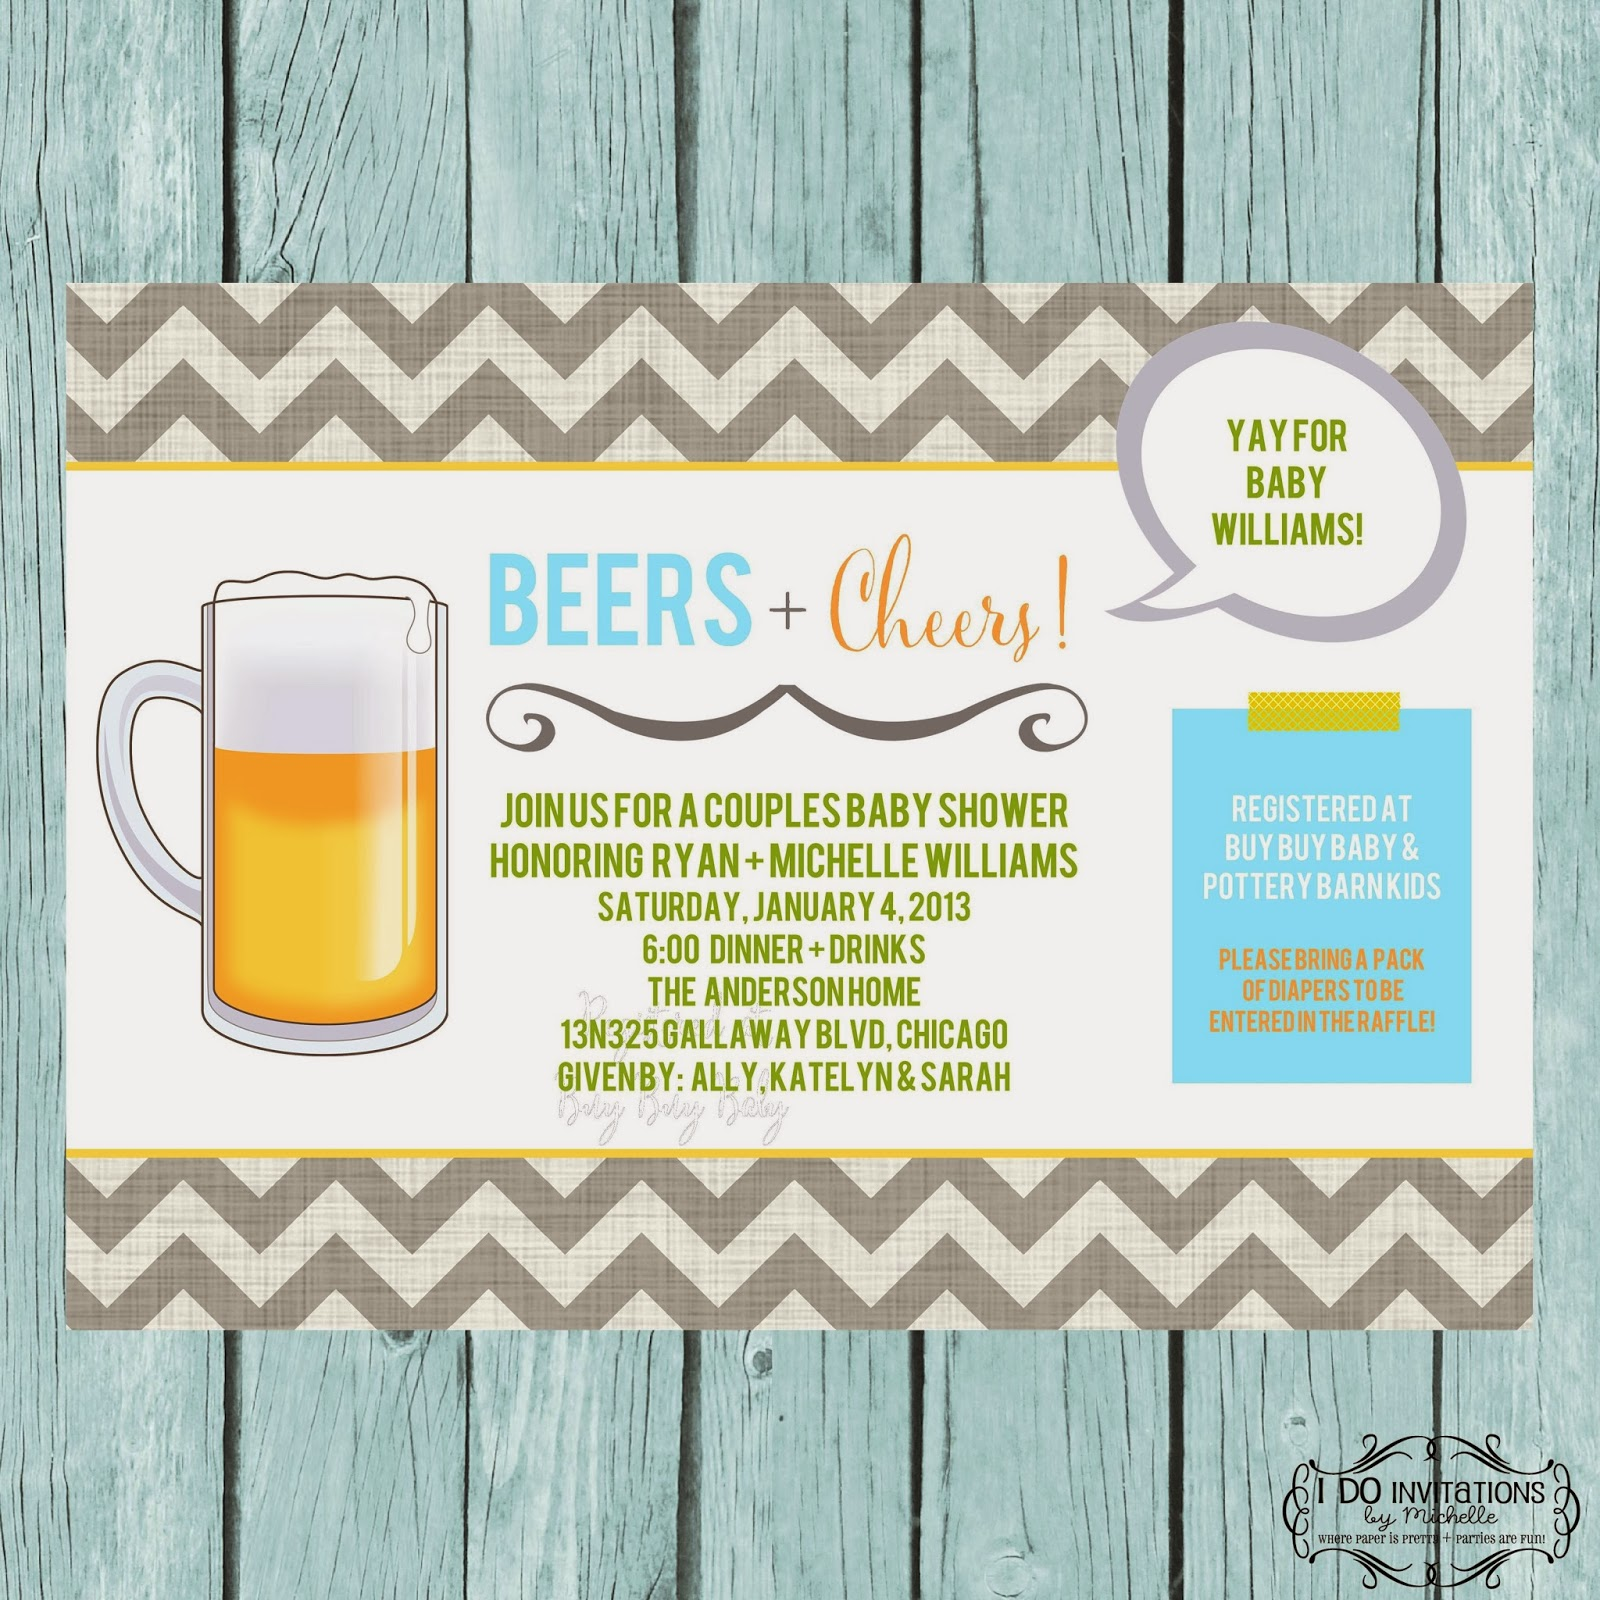 Beers cheers couples baby shower invitation ellery designs beers cheers couples baby shower invitation it was one of those ideas that i had spinning in my head that panned out exactly as i had envisioned filmwisefo